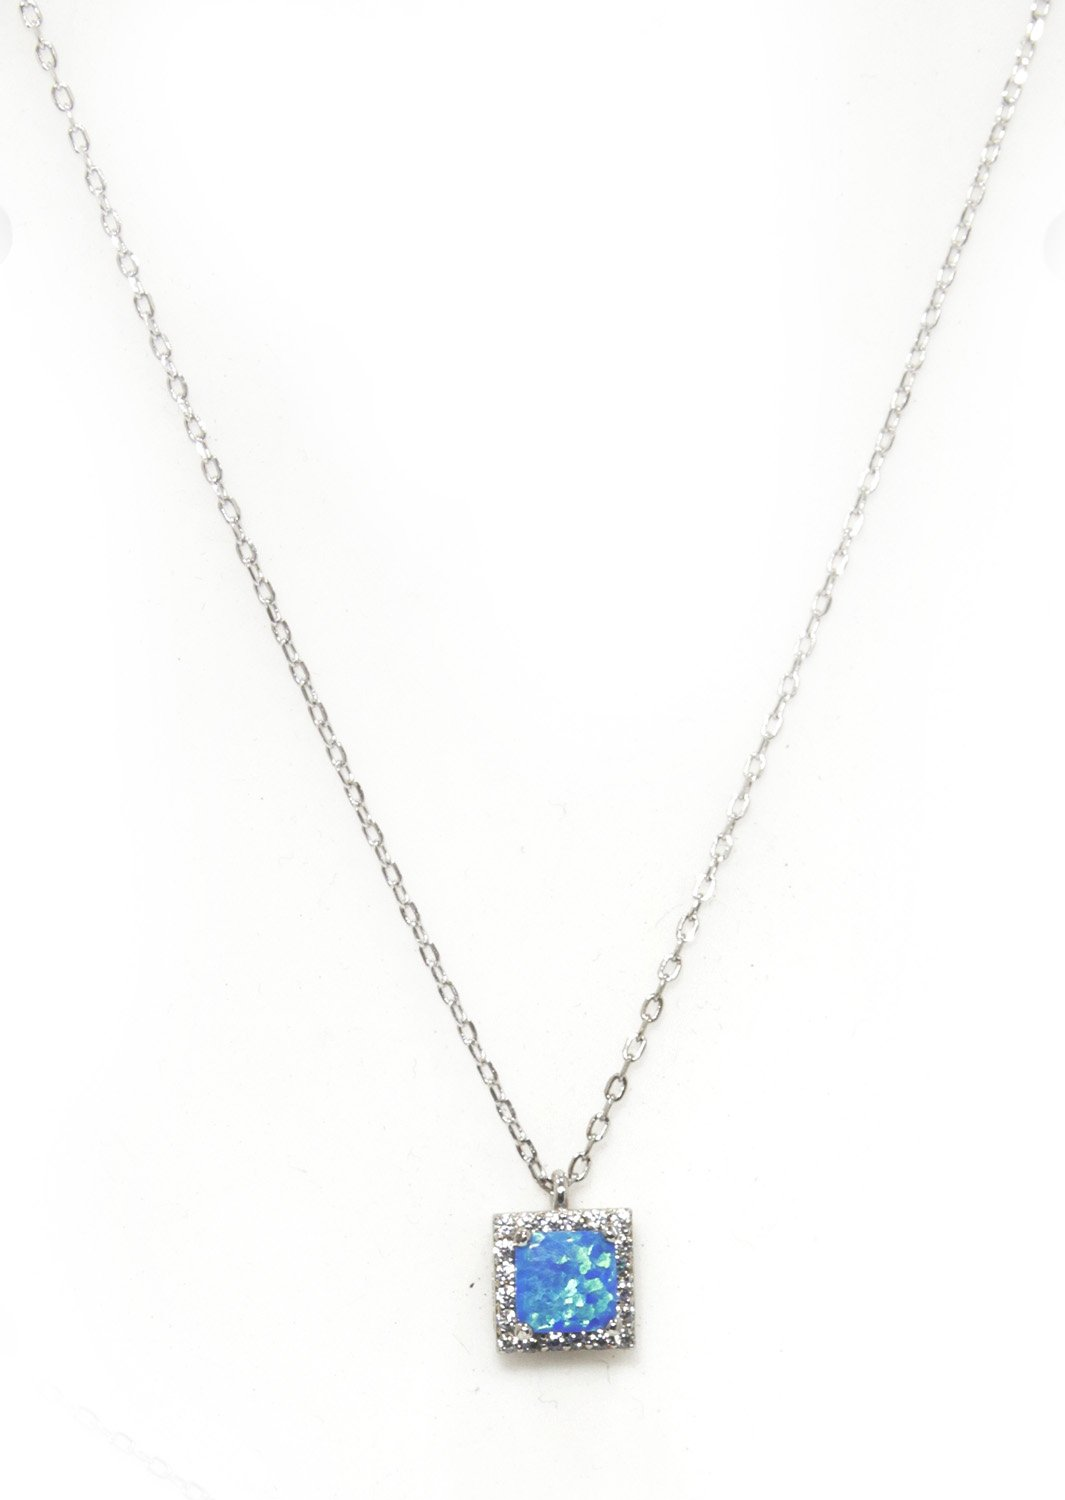 Pendant silver necklace with opal and zircon